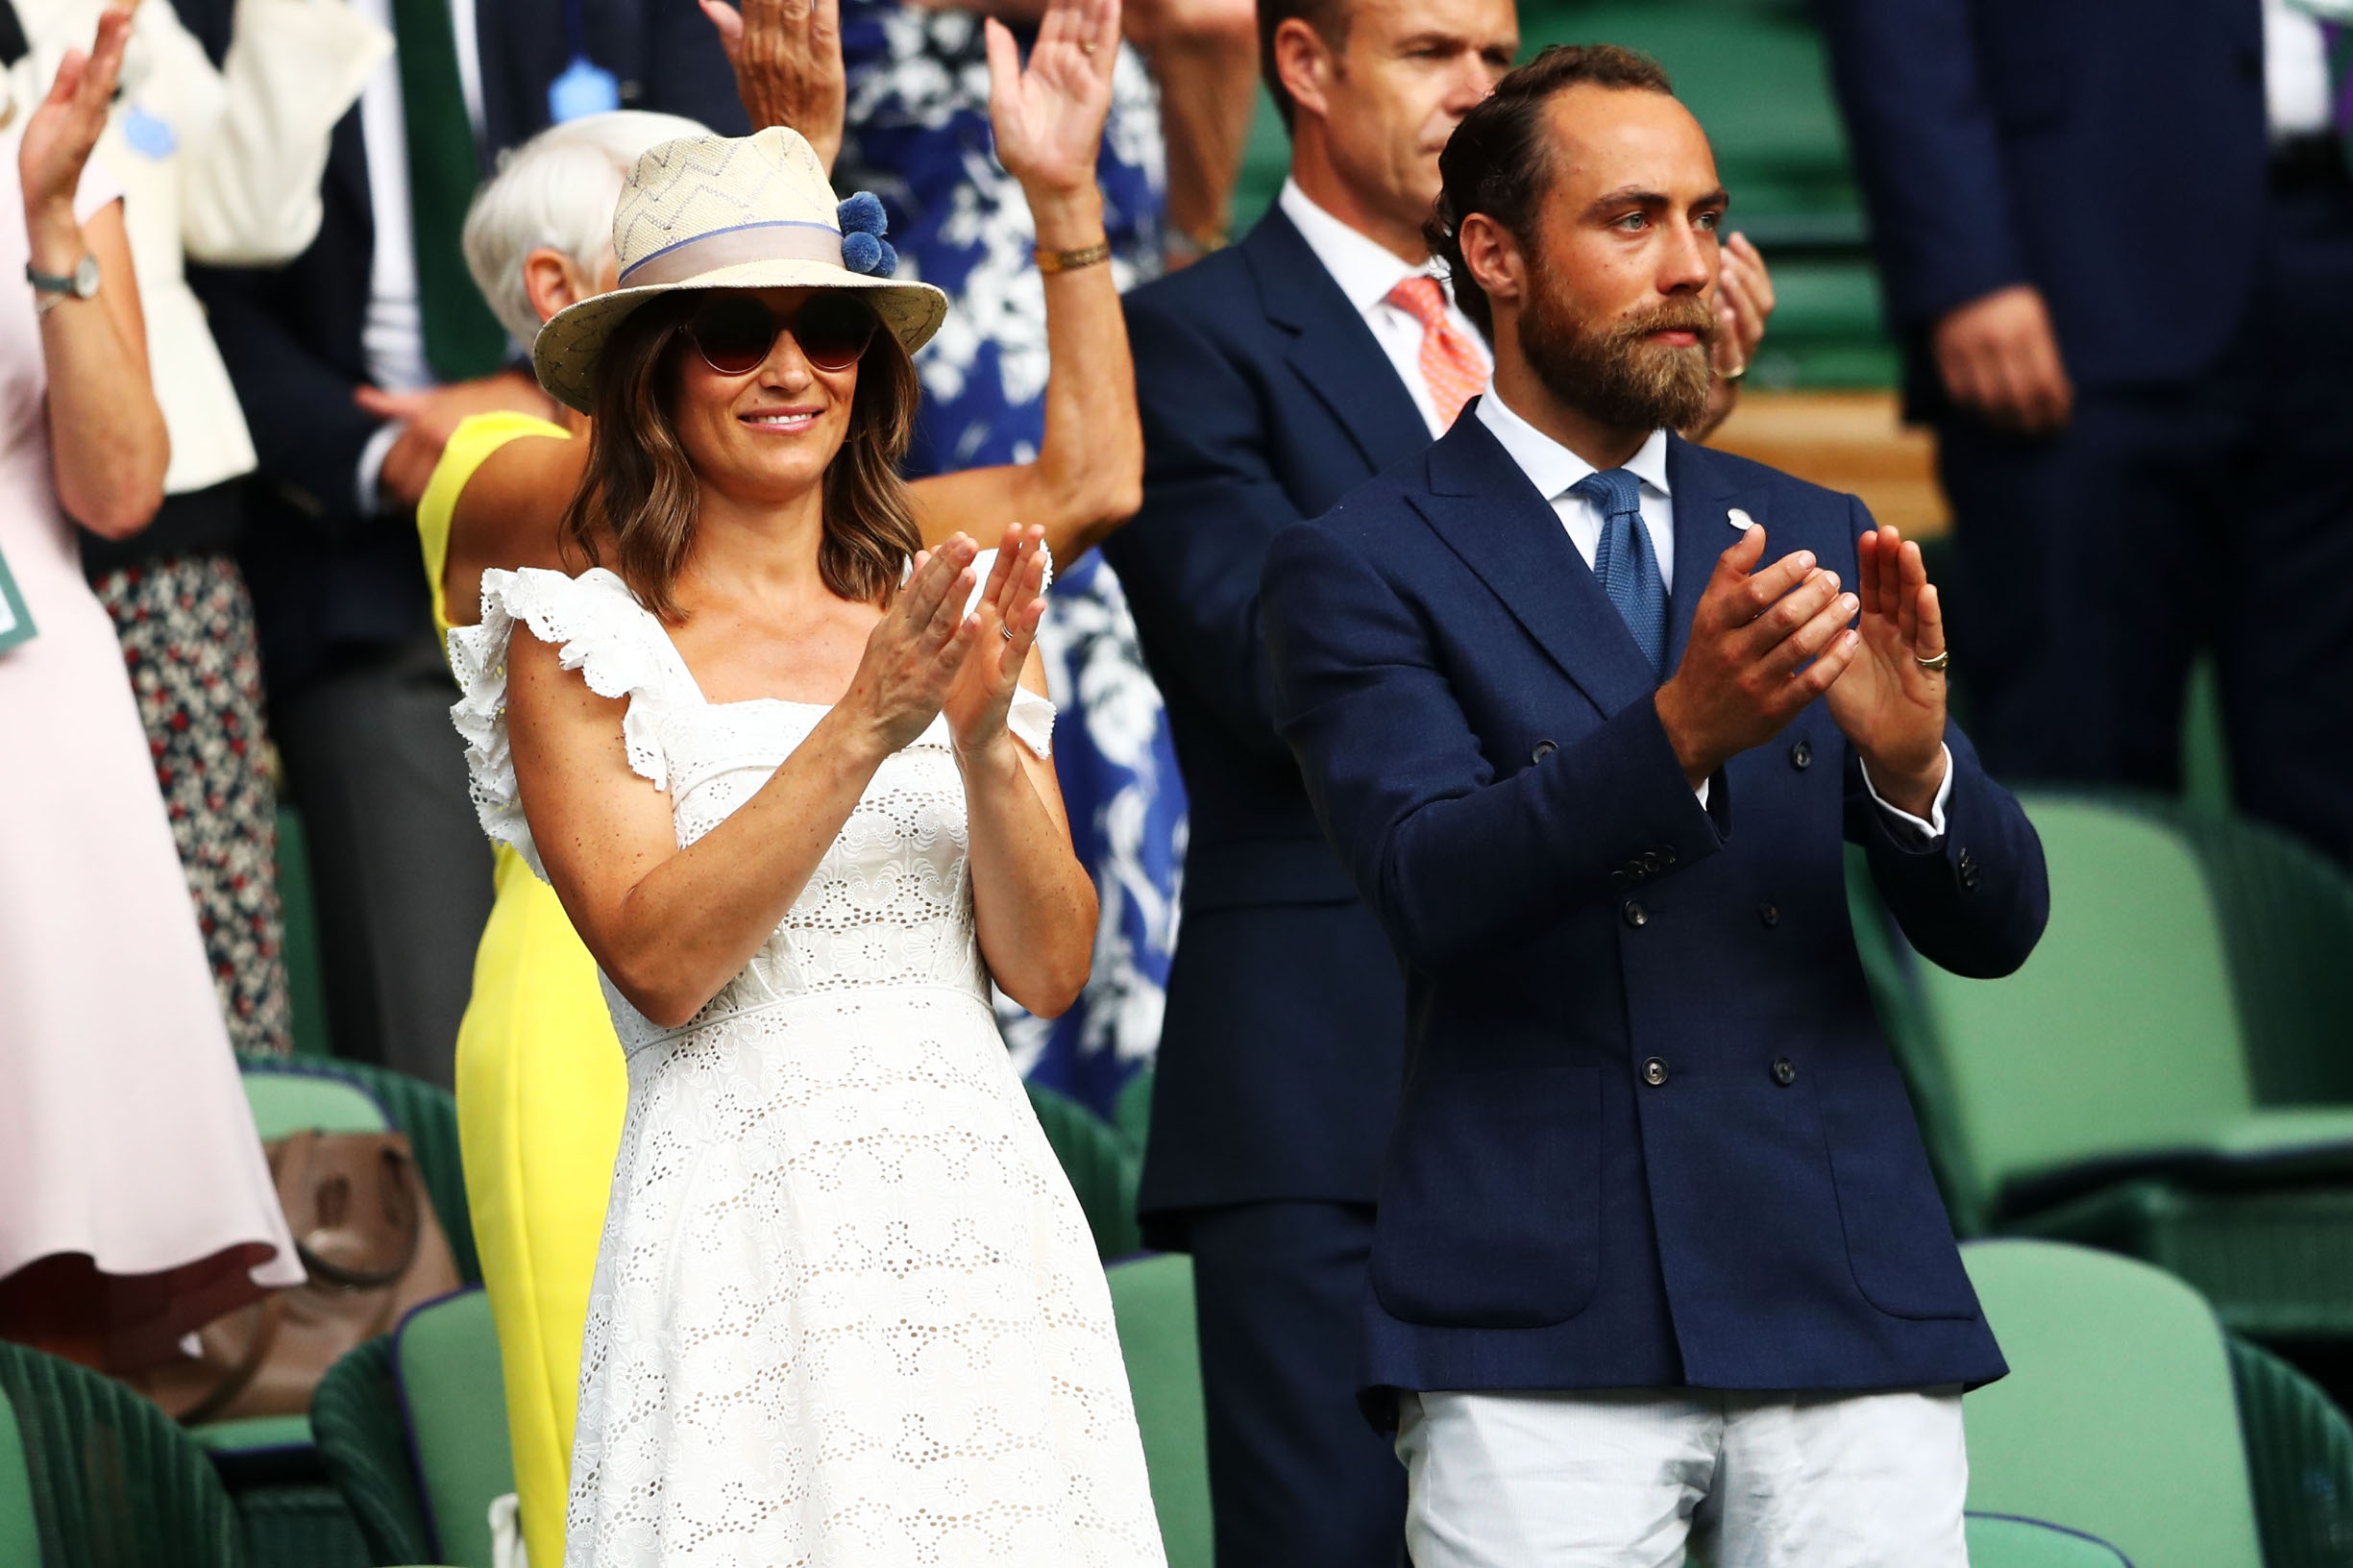 LONDON, ENGLAND - JULY 05:  (L-R) Pippa Middleton and James Middleton applaud Kyle Edmund of Great Britain defeating Bradley Klahn of the United States during in the Men's Singles second round match on day four of the Wimbledon Lawn Tennis Championships at All England Lawn Tennis and Croquet Club on July 5, 2018 in London, England.  (Photo by Michael Steele/Getty Images)